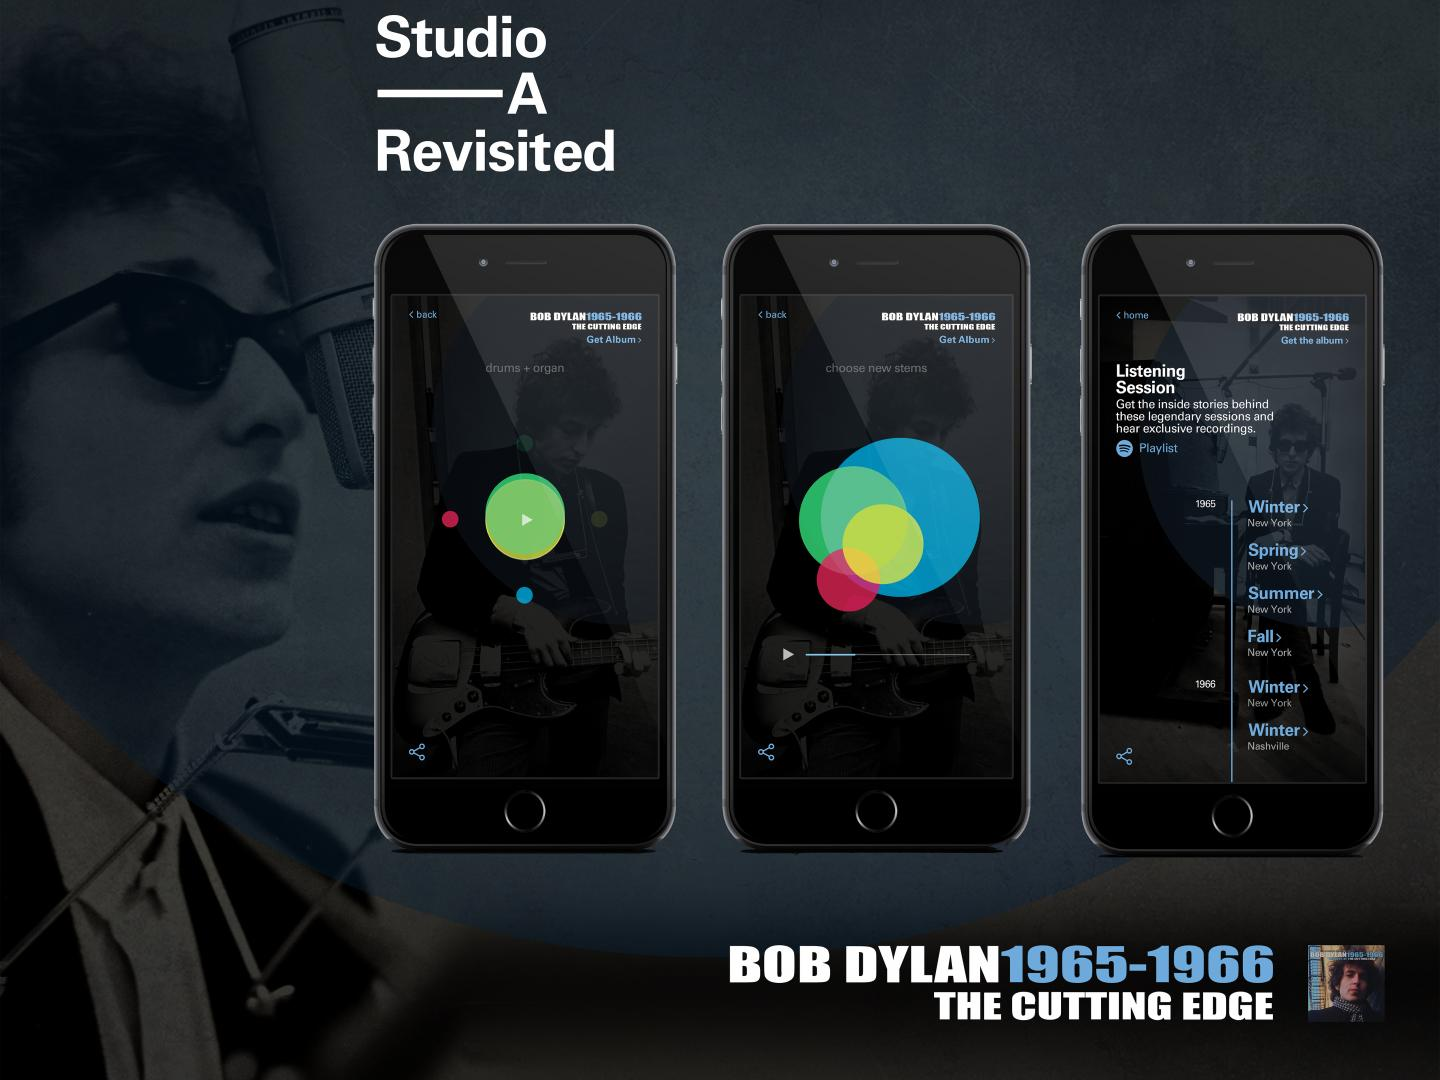 Bob Dylan: Studio A Revisited Thumbnail